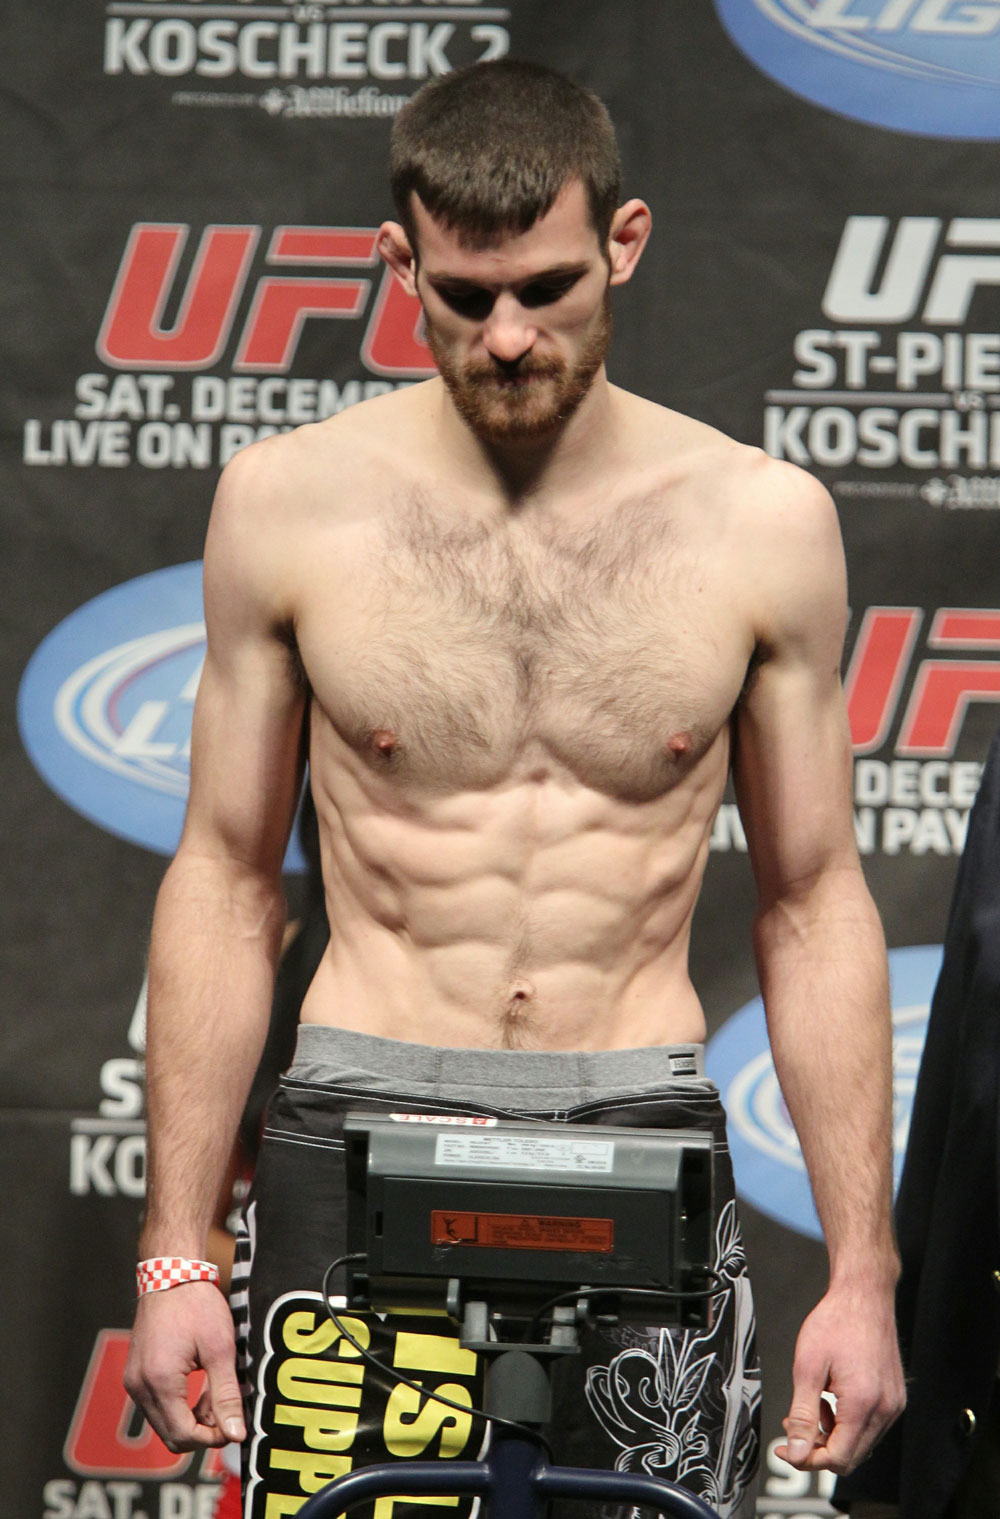 UFC 124 Weigh-in: Dustin Hazelett weighs in at 155lbs.